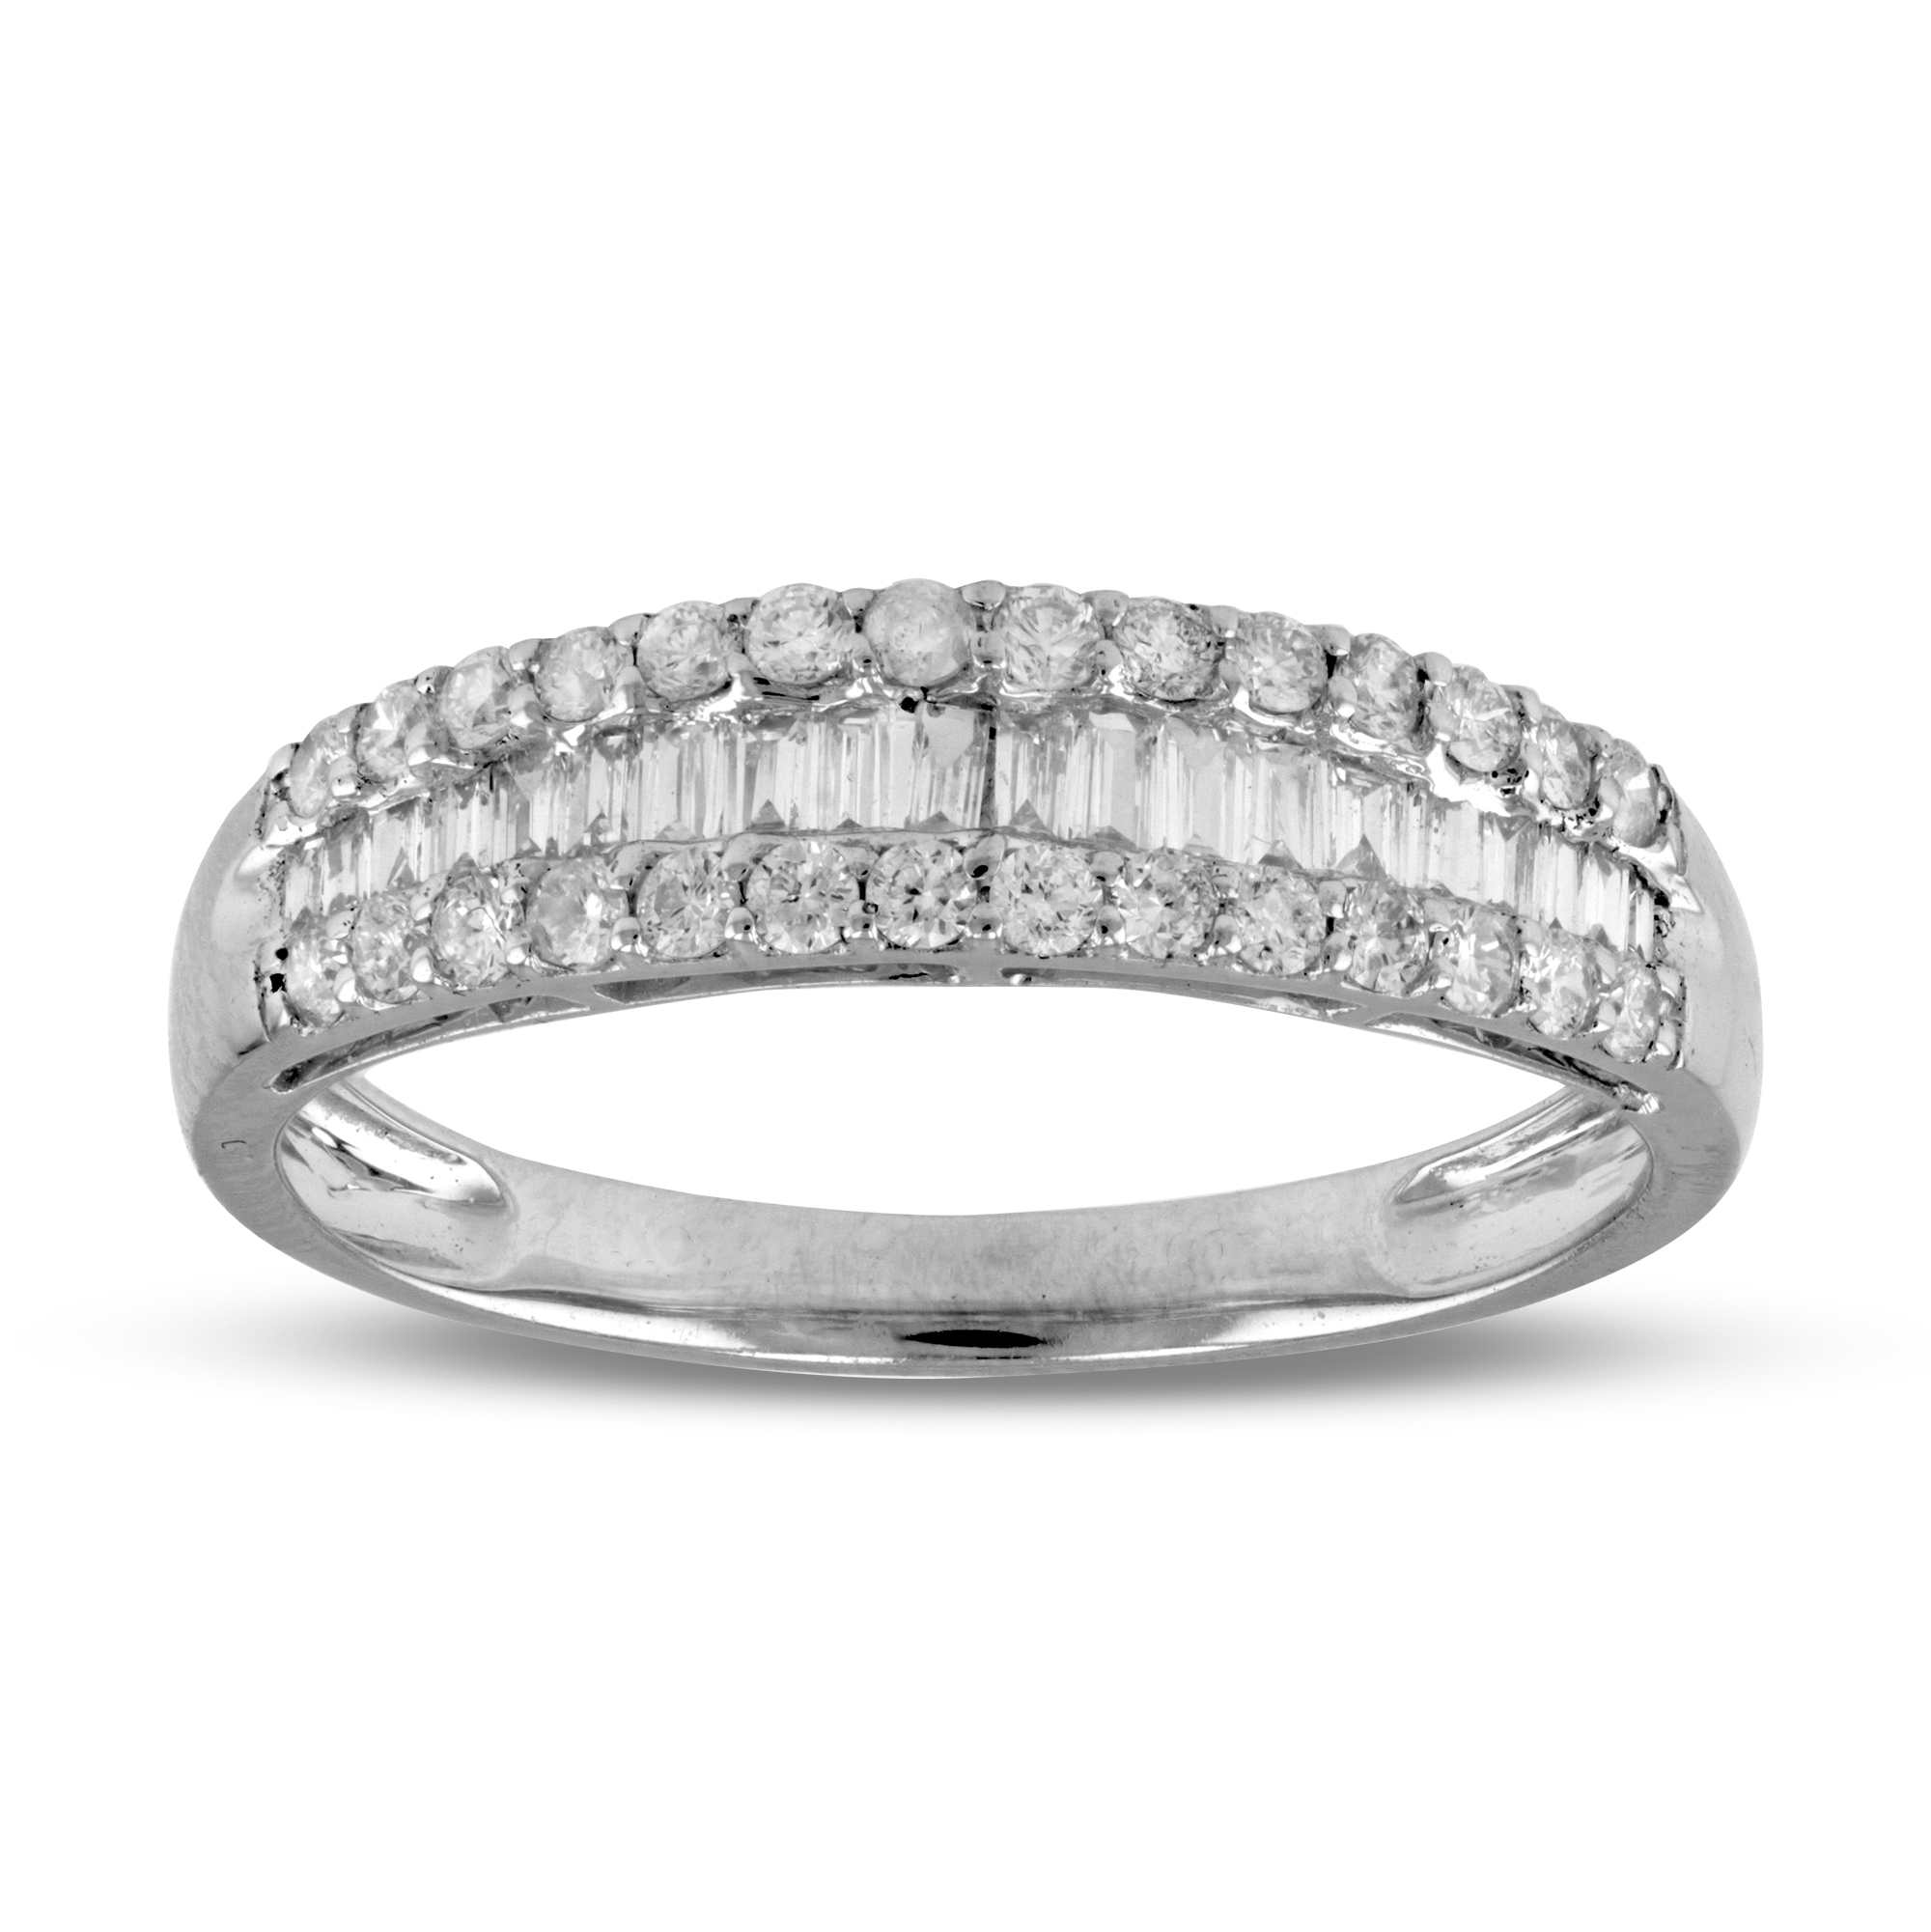 View 0.49ctw Diamond Wedding Band in 18k White Gold